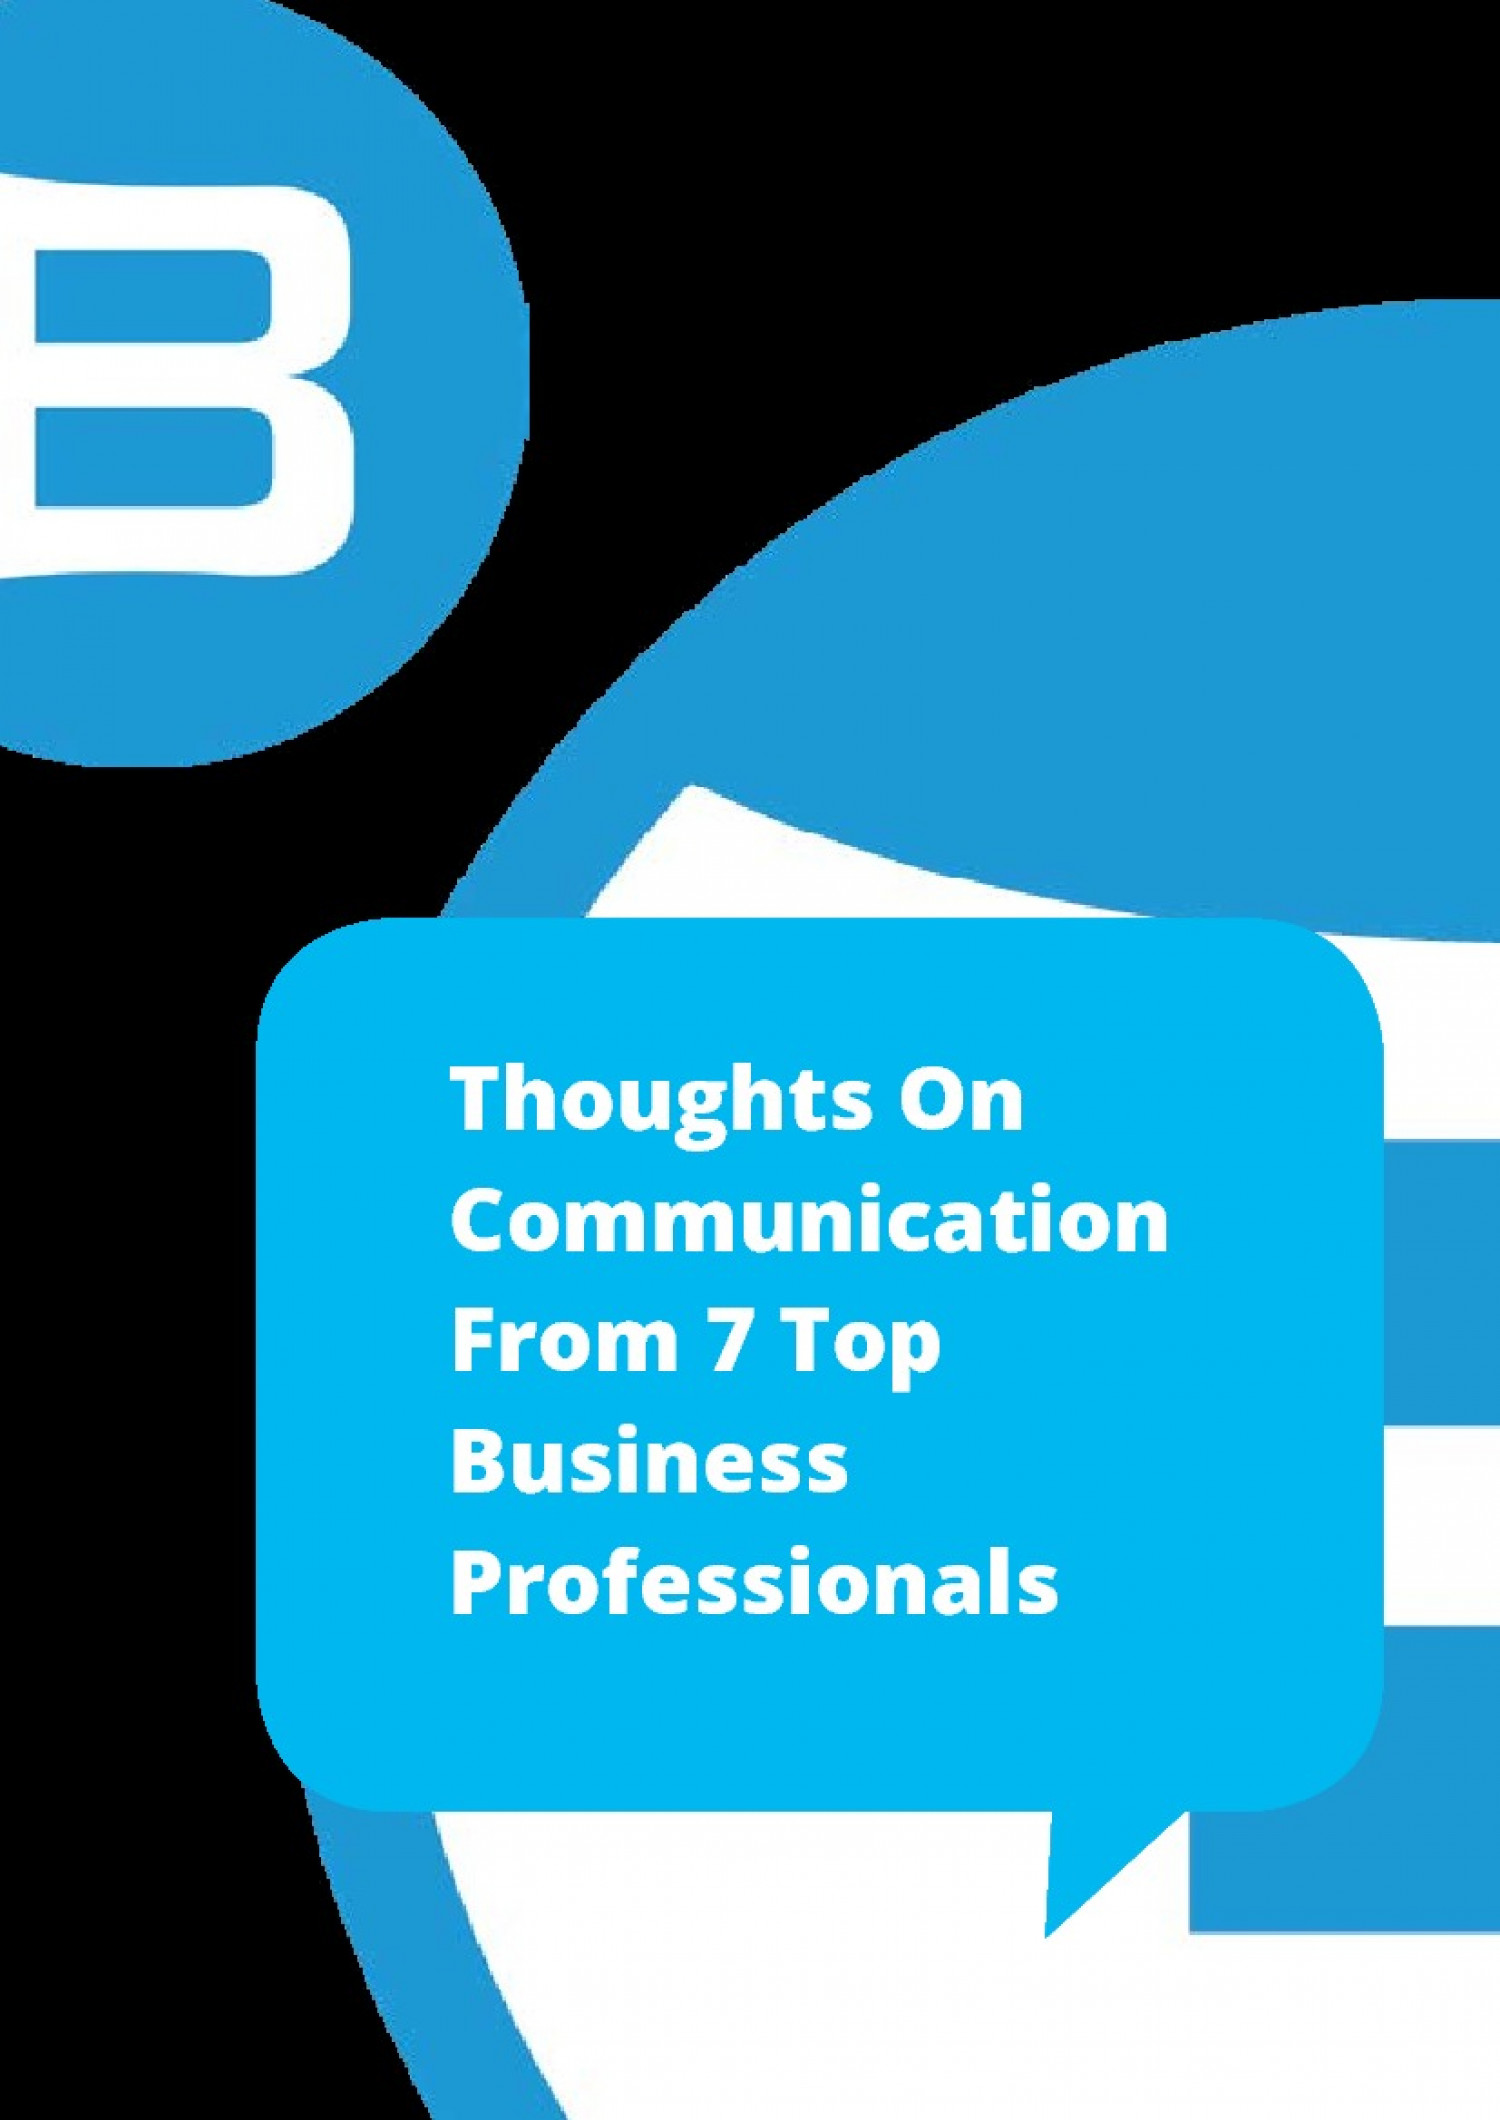 Thoughts on Communication from 7 Top Business Professionals Infographic